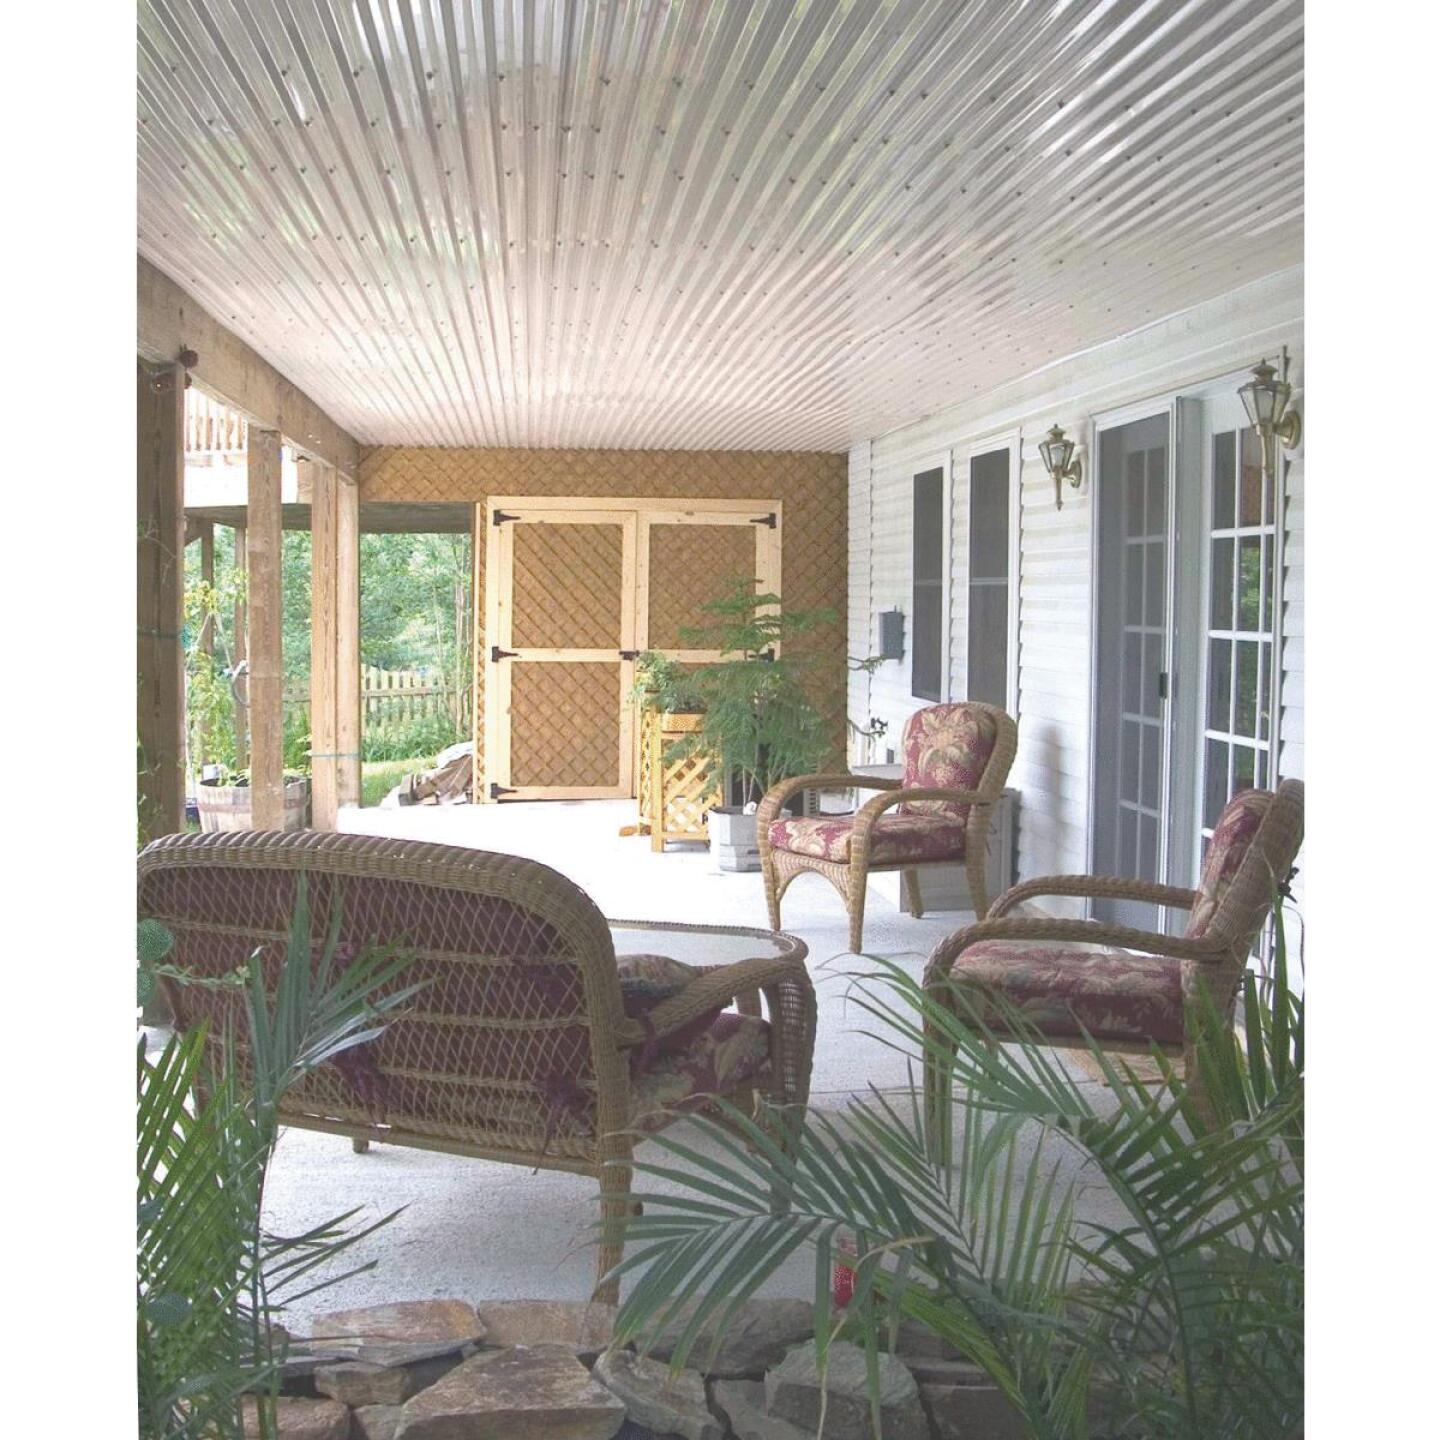 Tuftex UltraVinyl 26 In. x 10 Ft. Opaque White Square Wave Polycarb & Vinyl Corrugated Panels Image 2